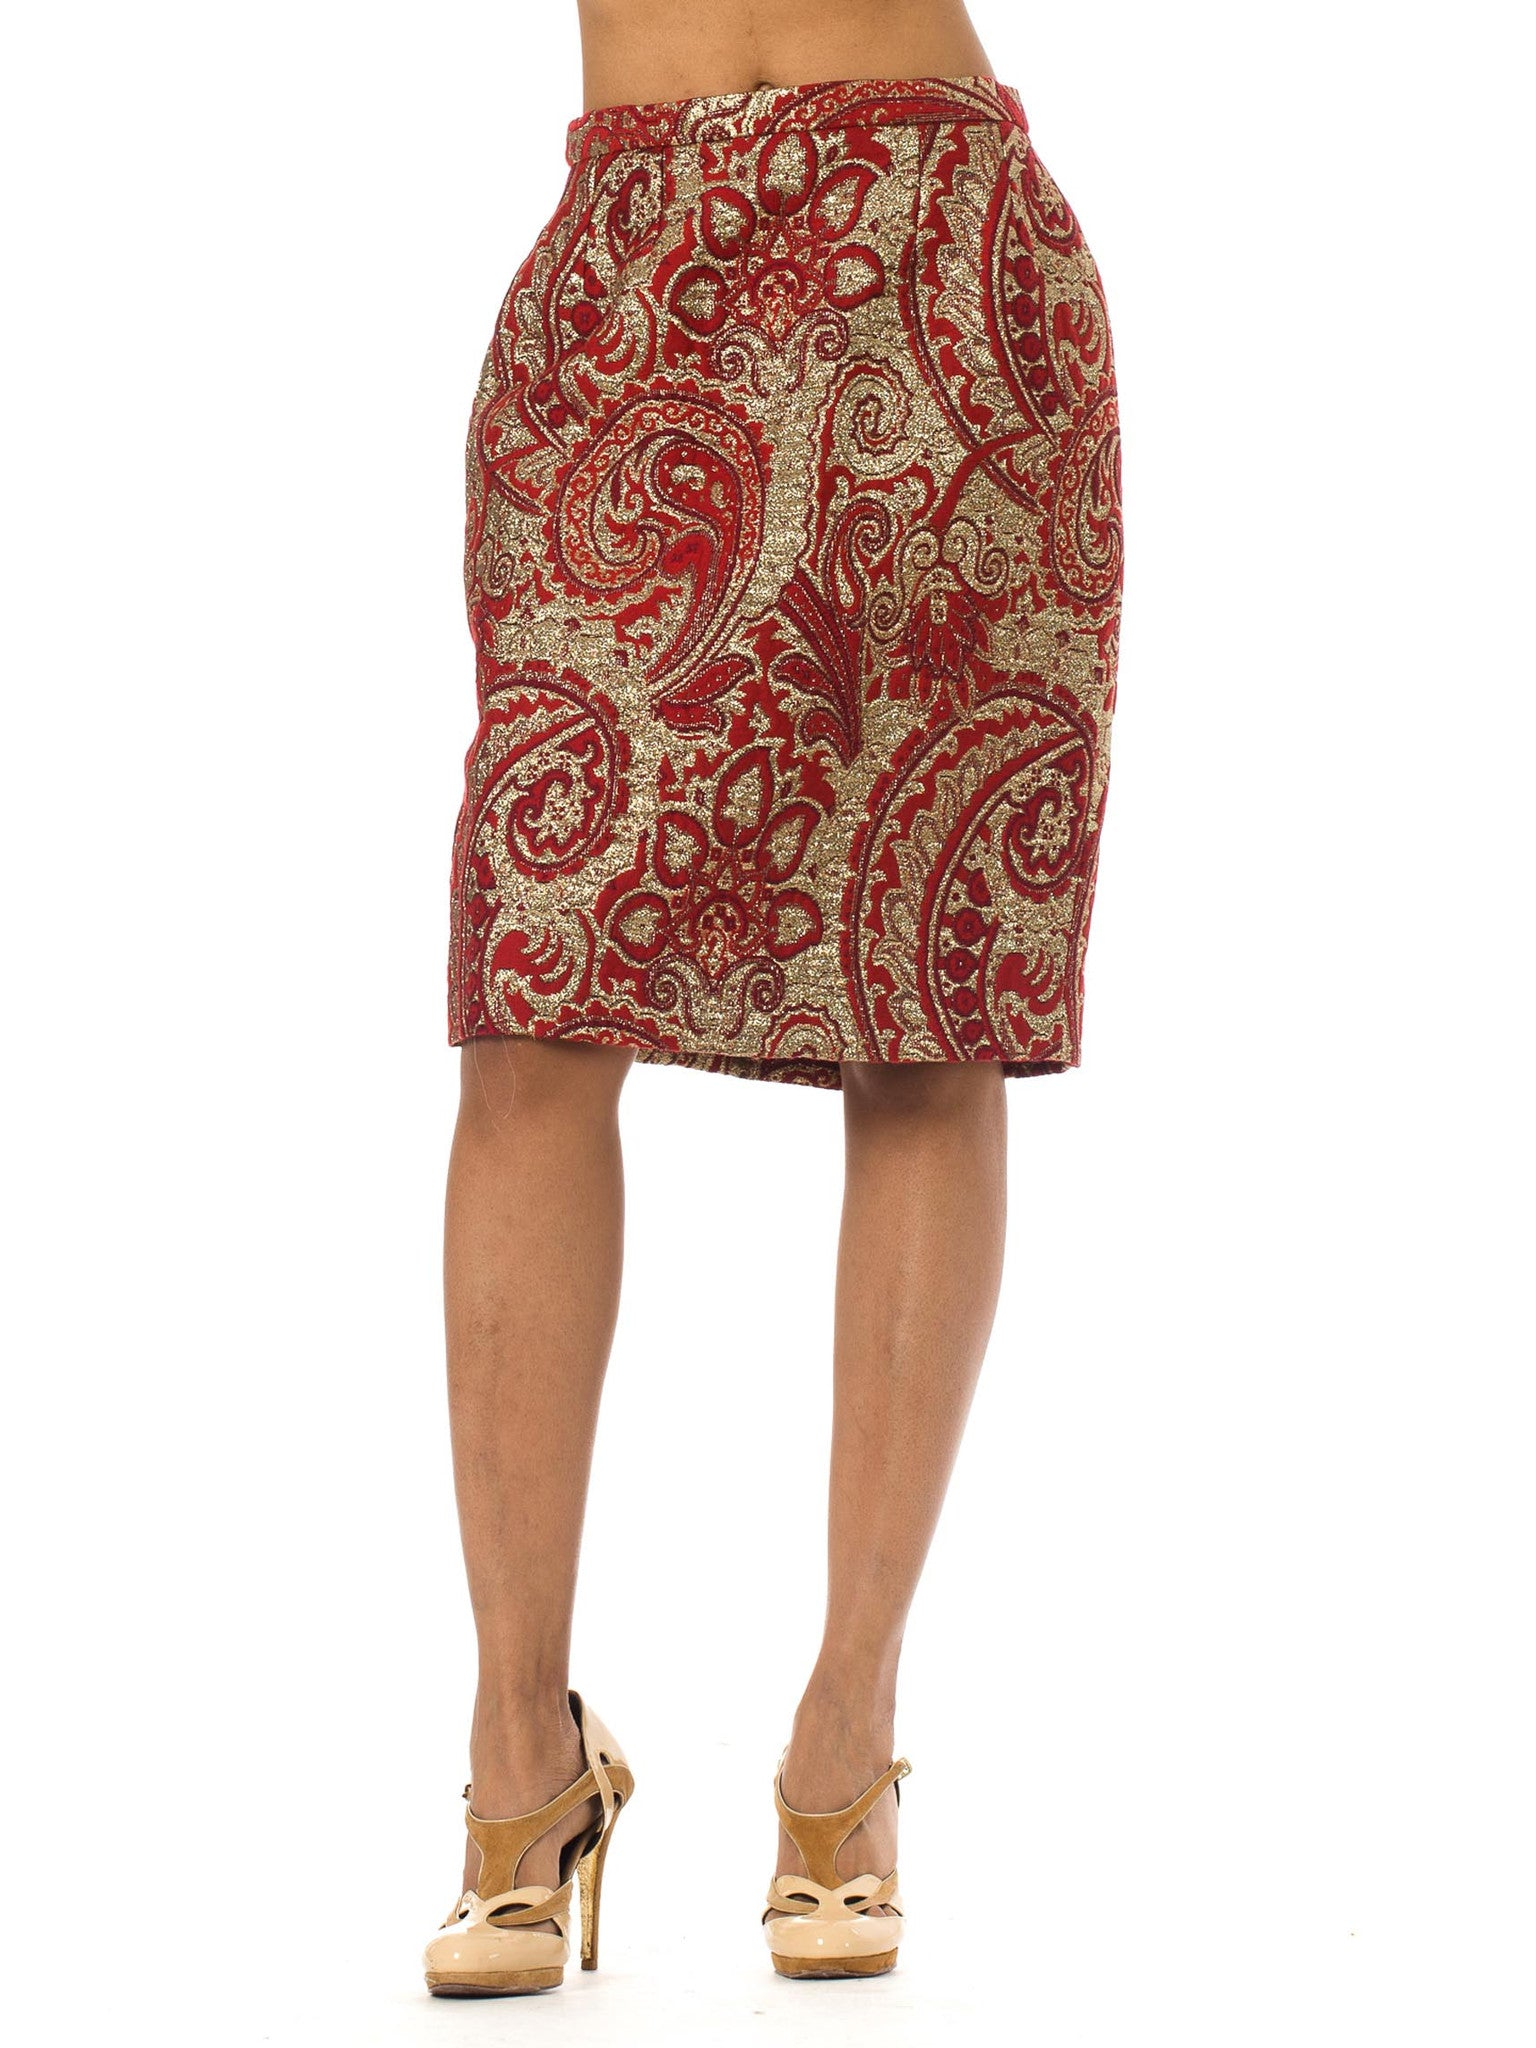 1980's Guy Laroche Montaigne Red and Gold Jacquard Pencil Skirt